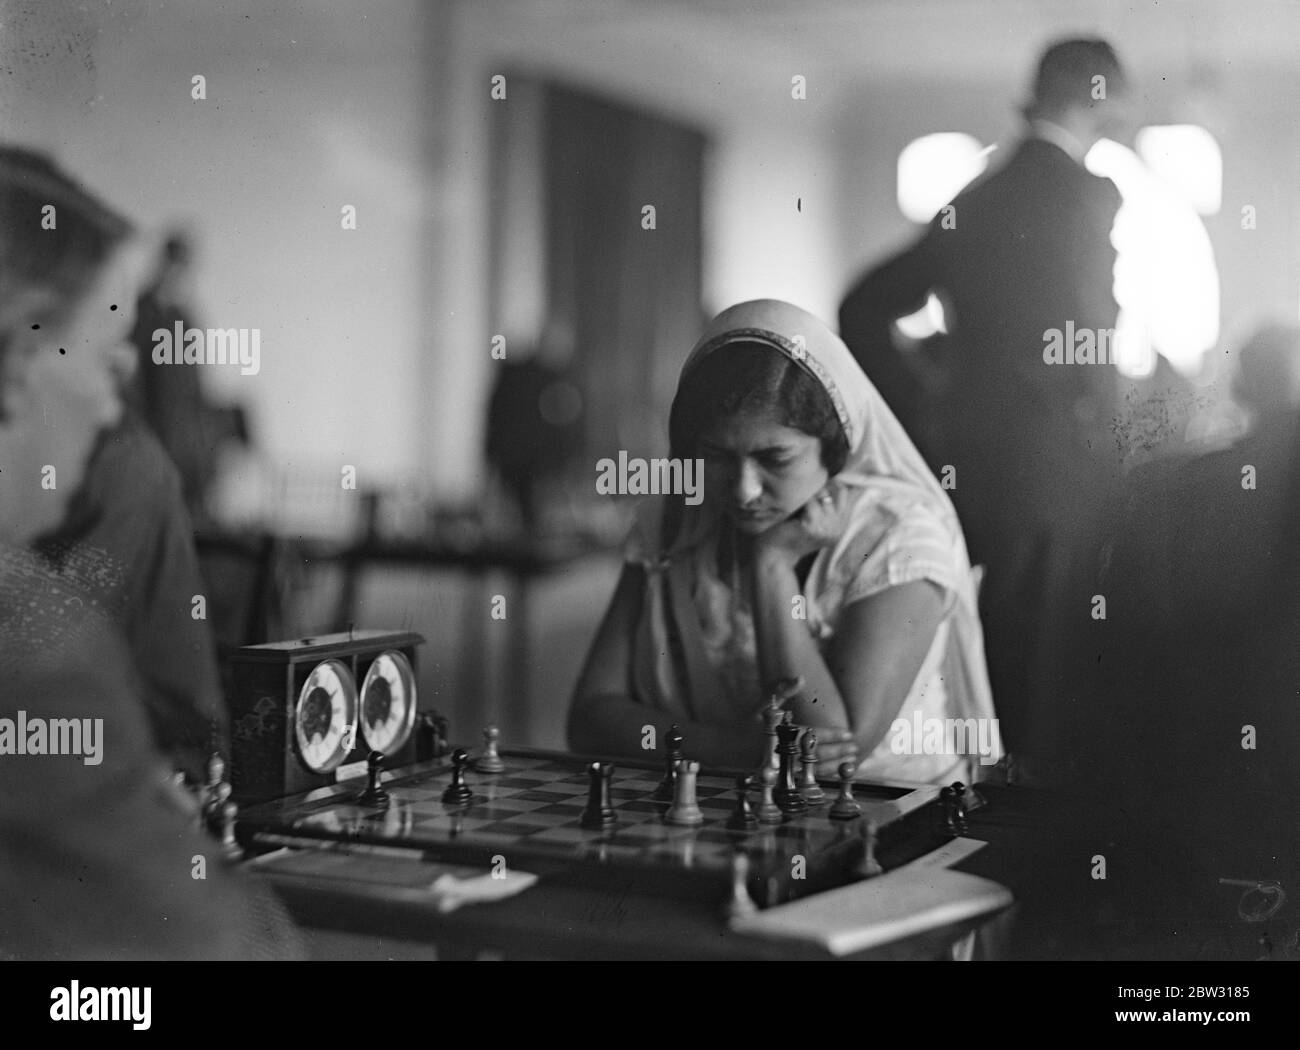 Indian girl concentrates in chess championship . Mrs Perin Mursah , an Indian girl who played in native sari , concentrating on a move during her match against Mr A J Duke in the British Chess Championship at the Empire Chess Club in London . 17 August 1932 Stock Photo